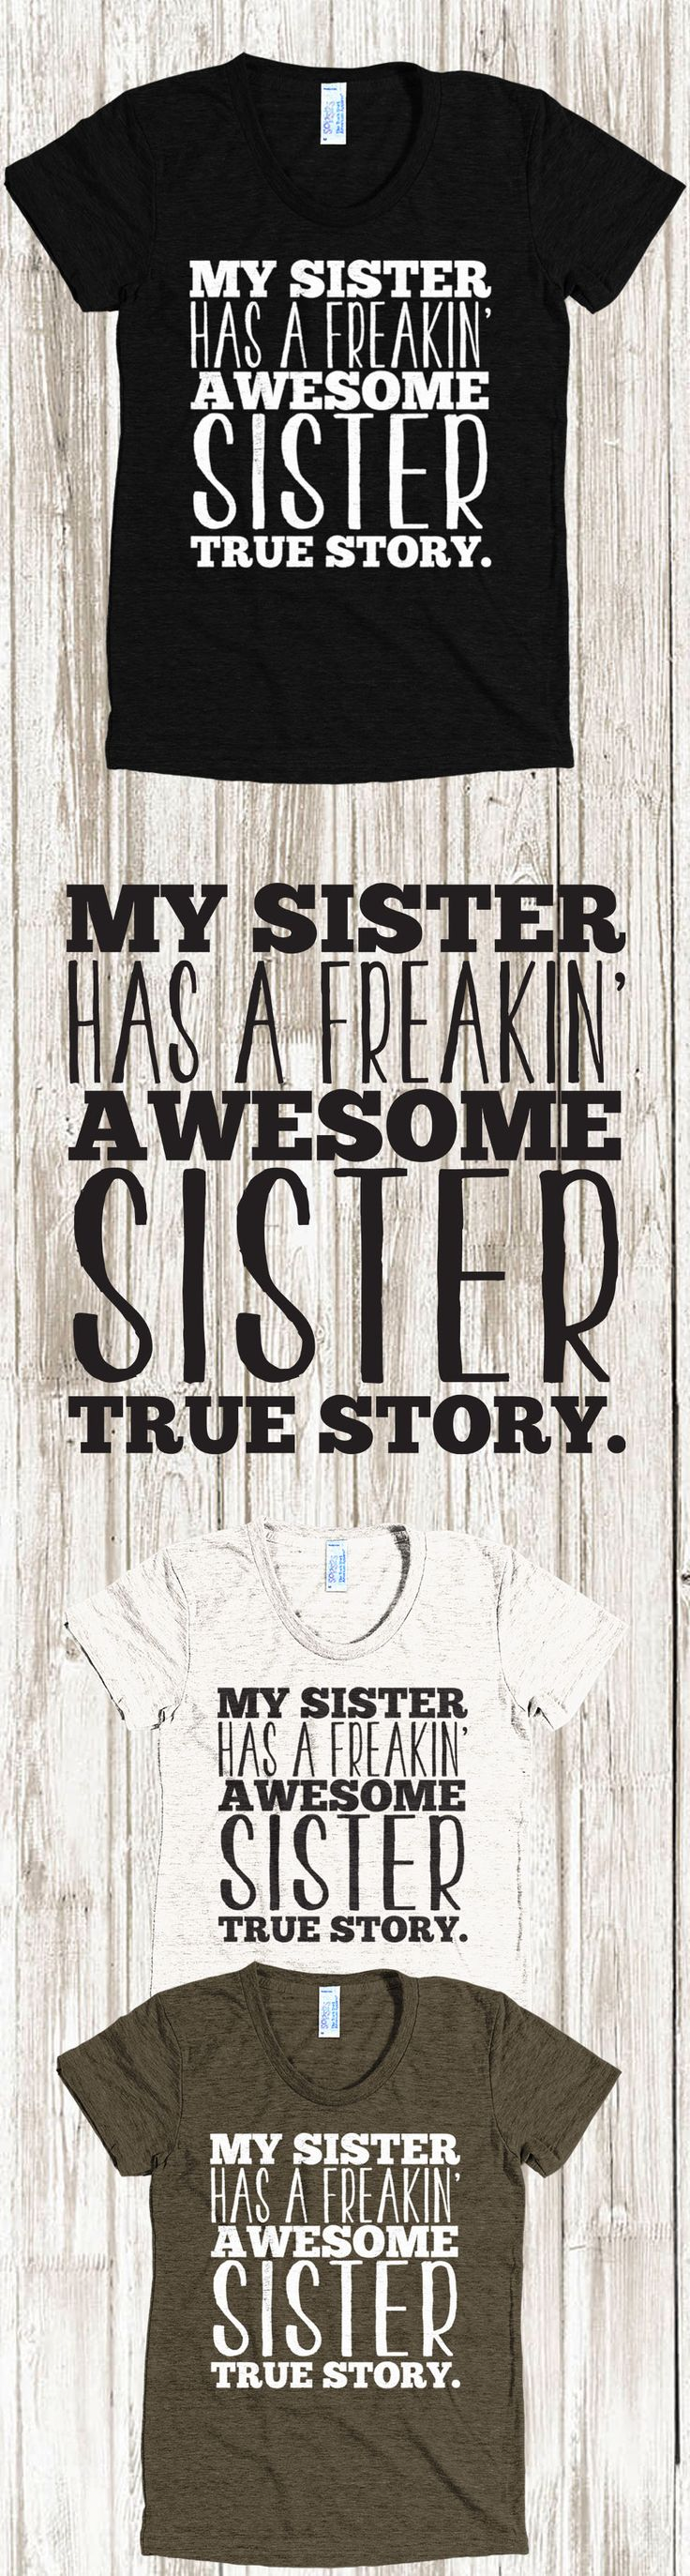 Did you know National Sister's Day is Aug 7th?Check out this awesome My Sist...